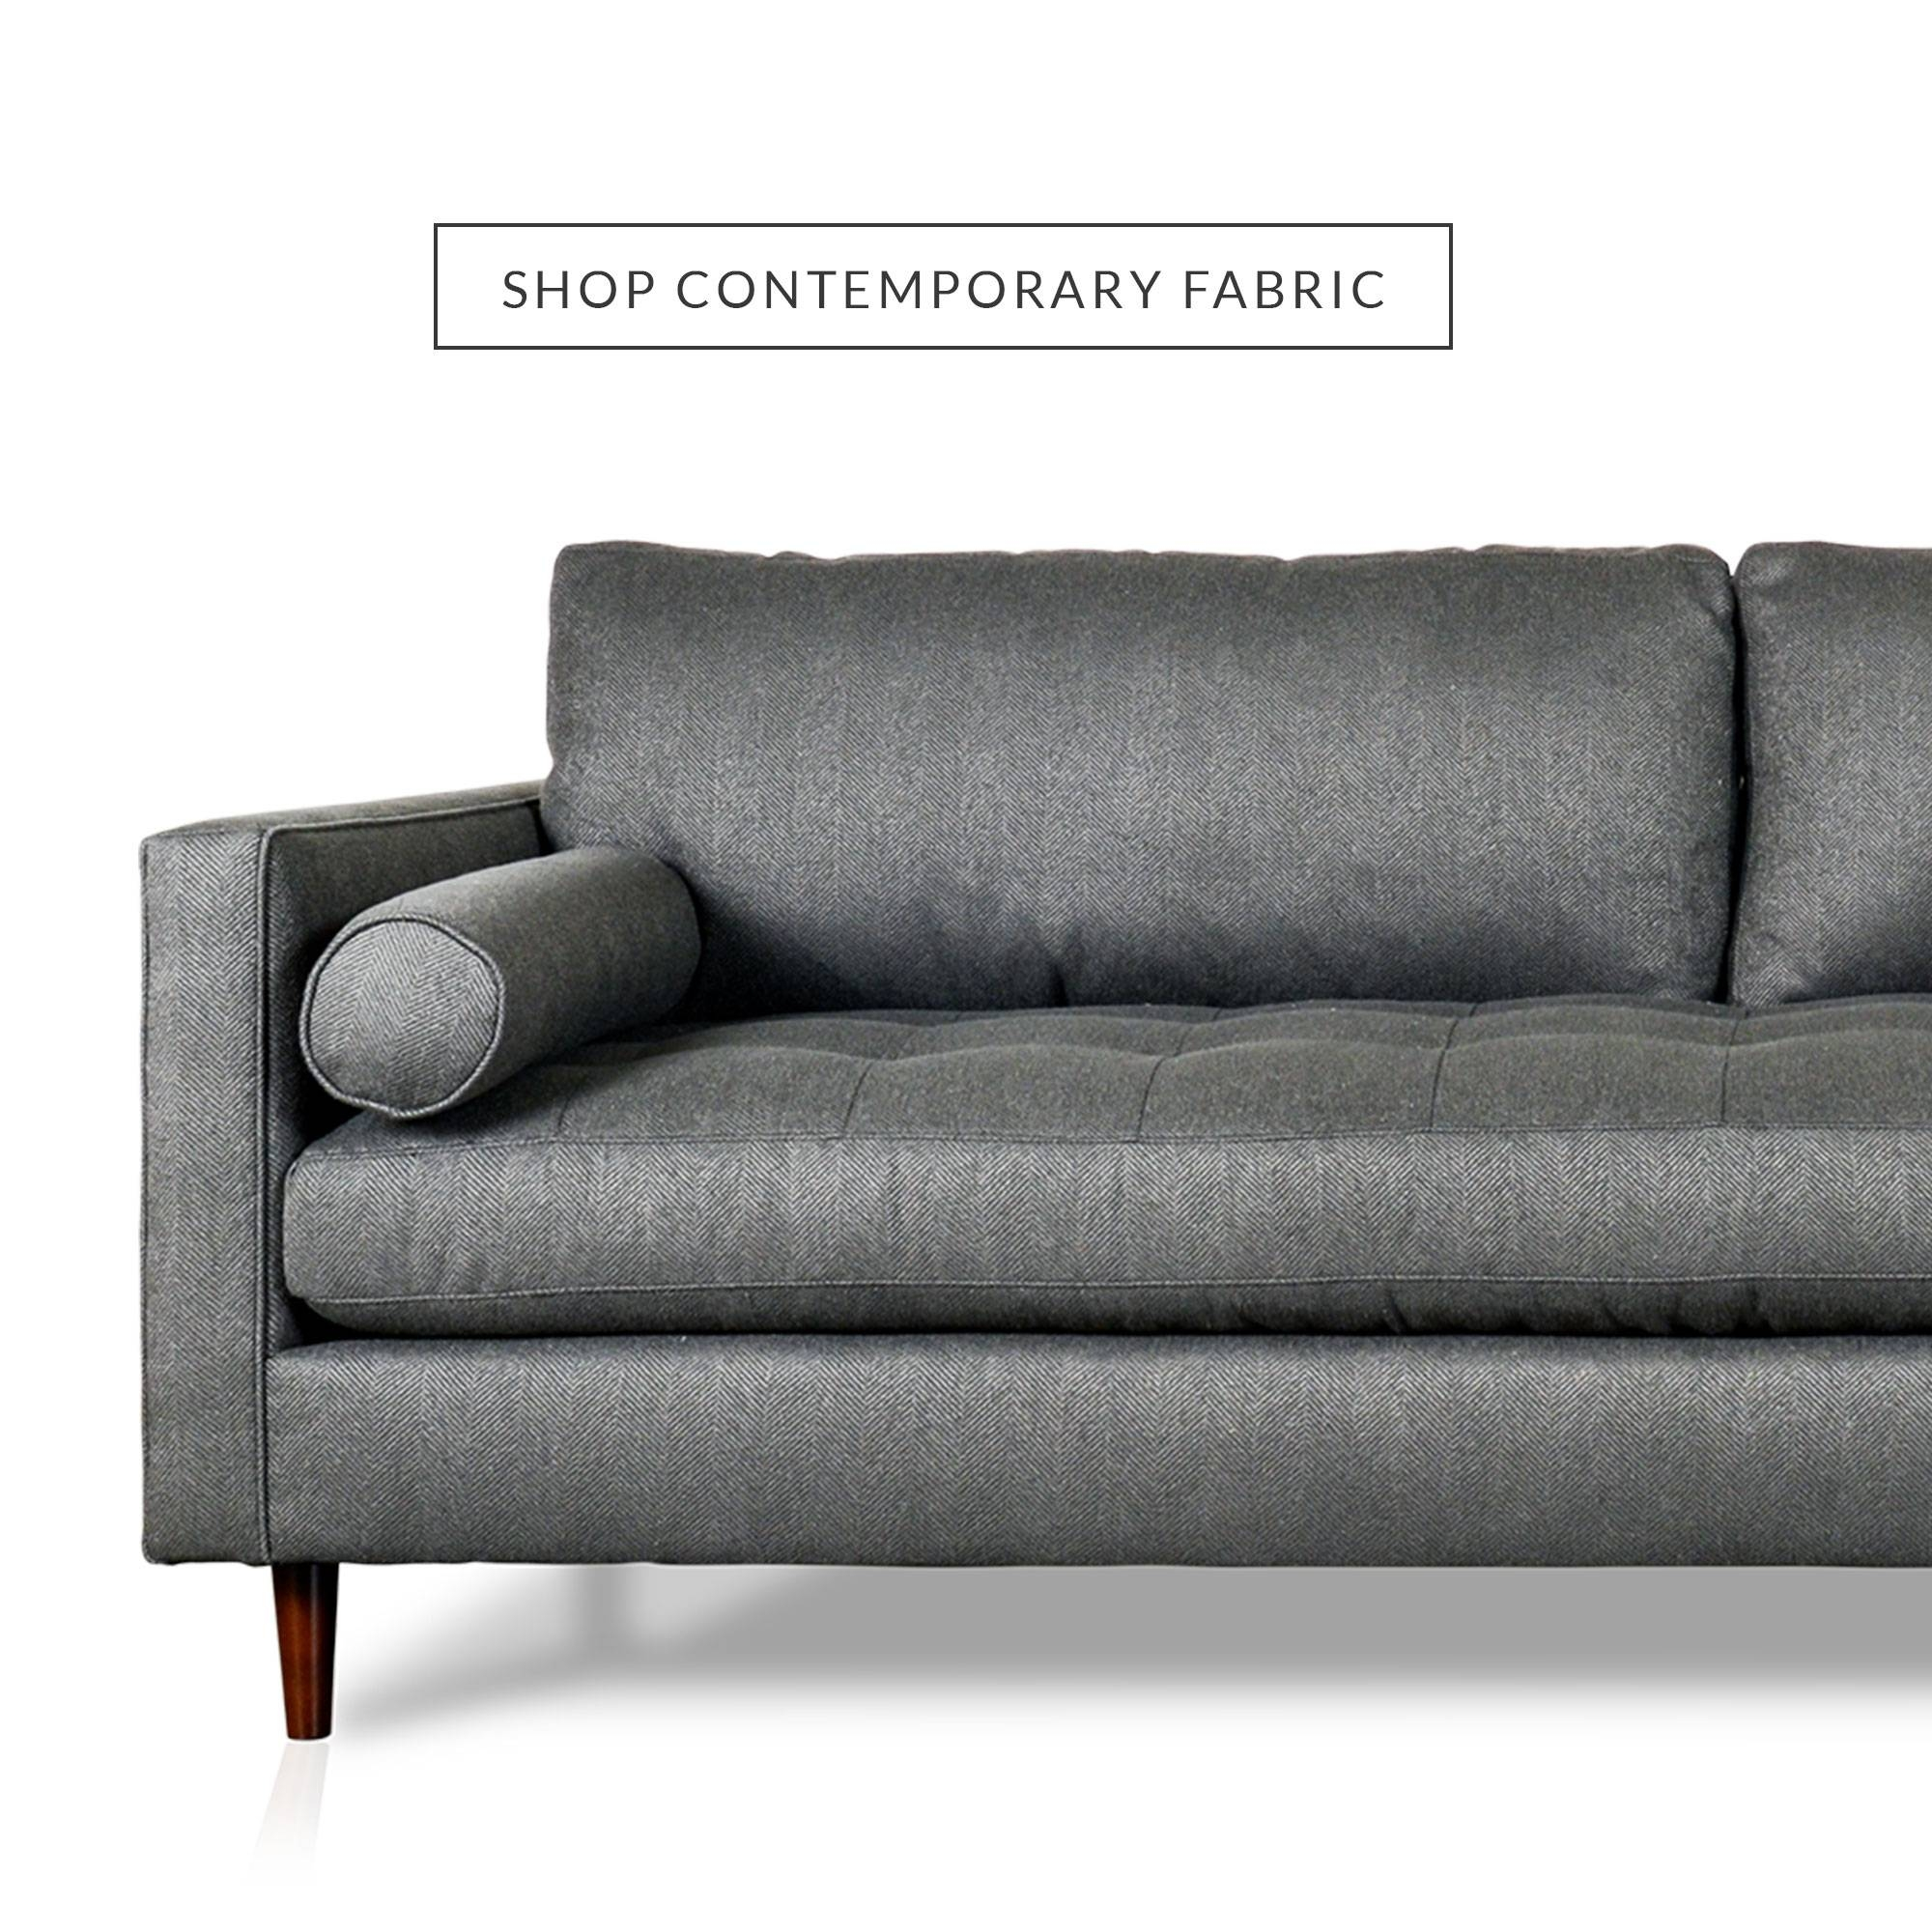 Chesterfield Sofas, Modern Furniture Made In Usa | Cococohome pertaining to Customized Sofas (Image 3 of 30)